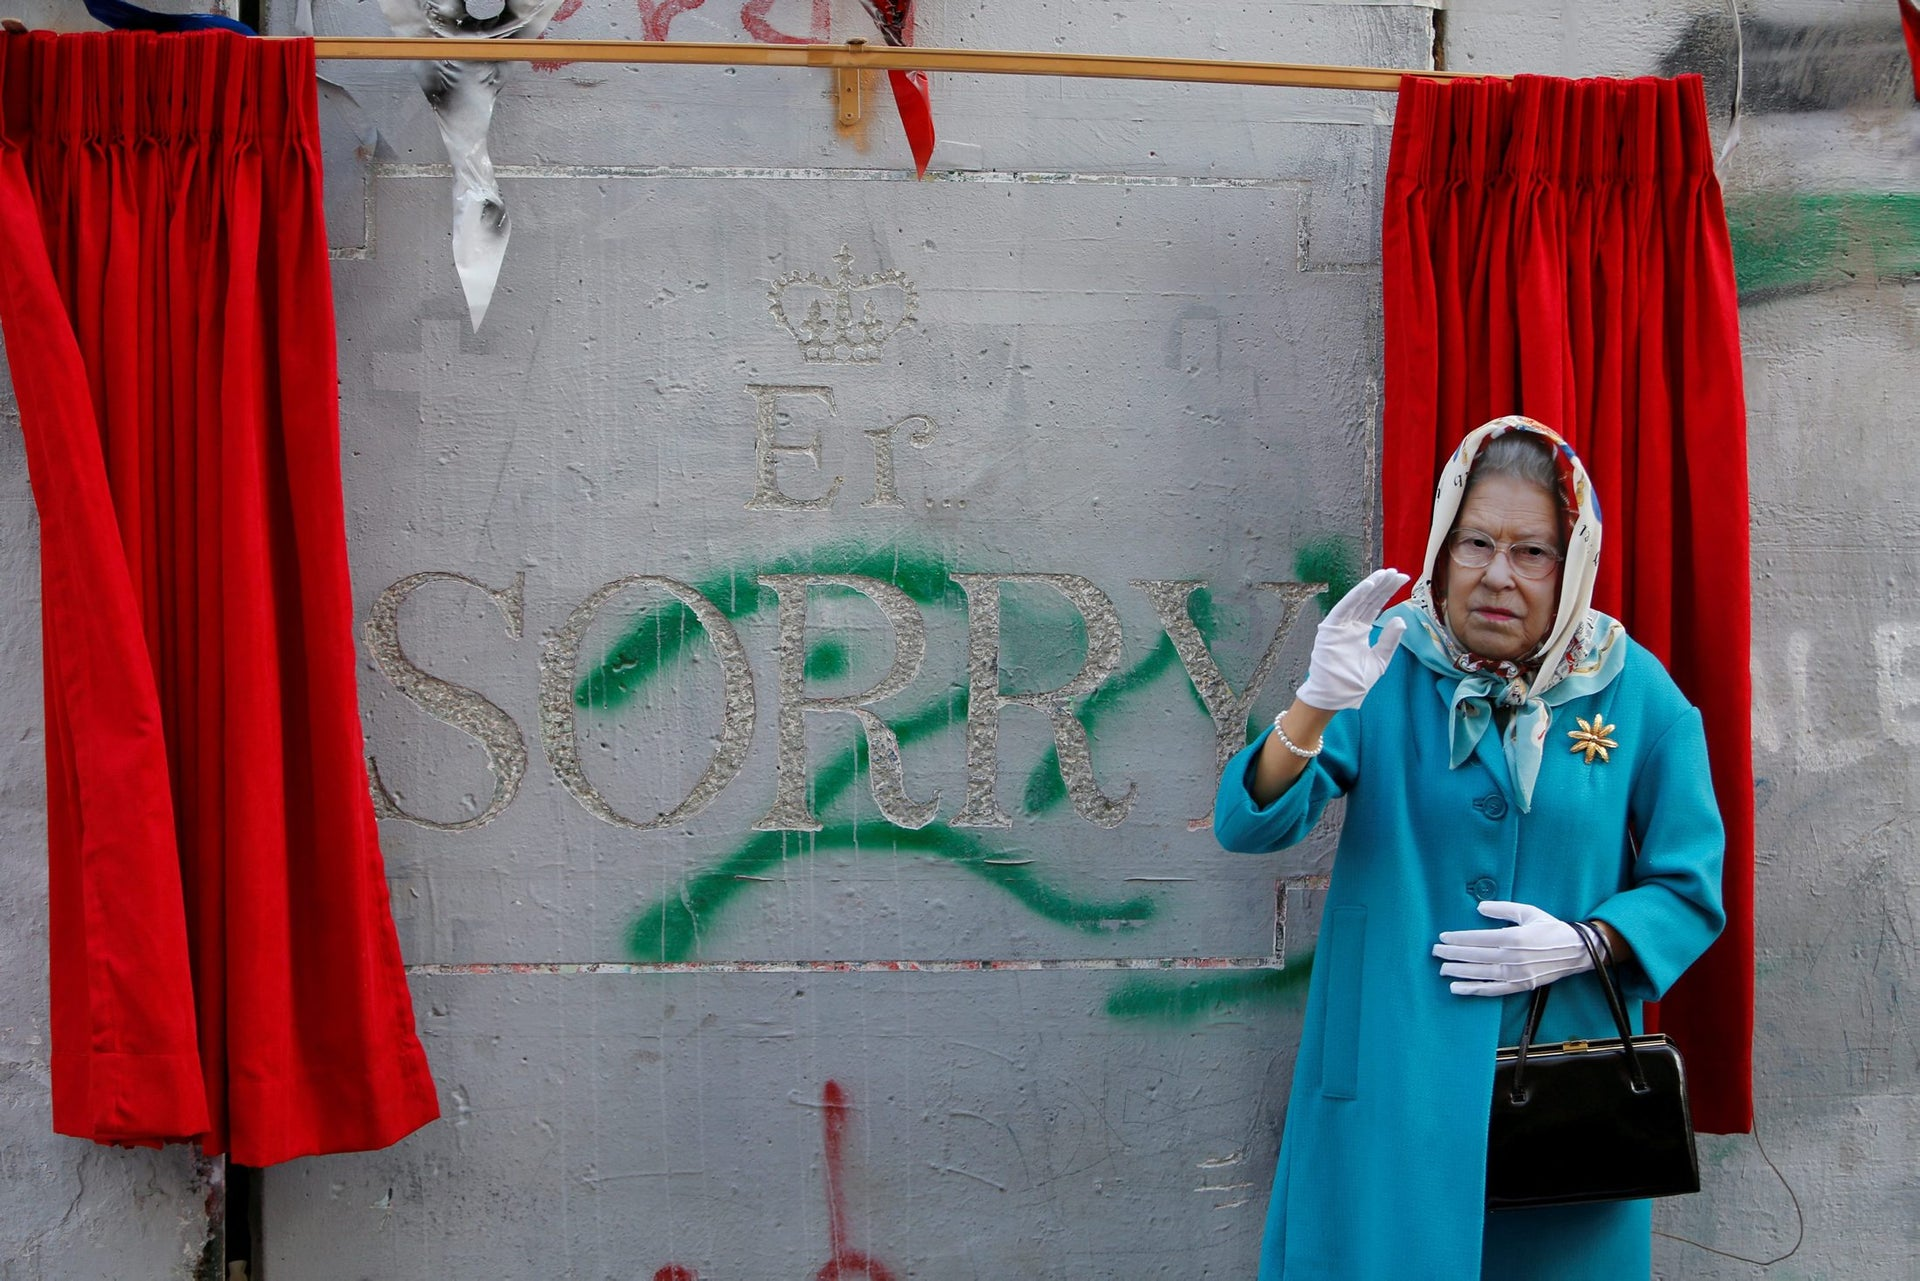 Someone dressed as Britain's Queen Elizabeth II gestures during an event organized by Banksy ahead of the anniversary of the Balfour Declaration, Bethlehem, West Bank, November 1, 2017.